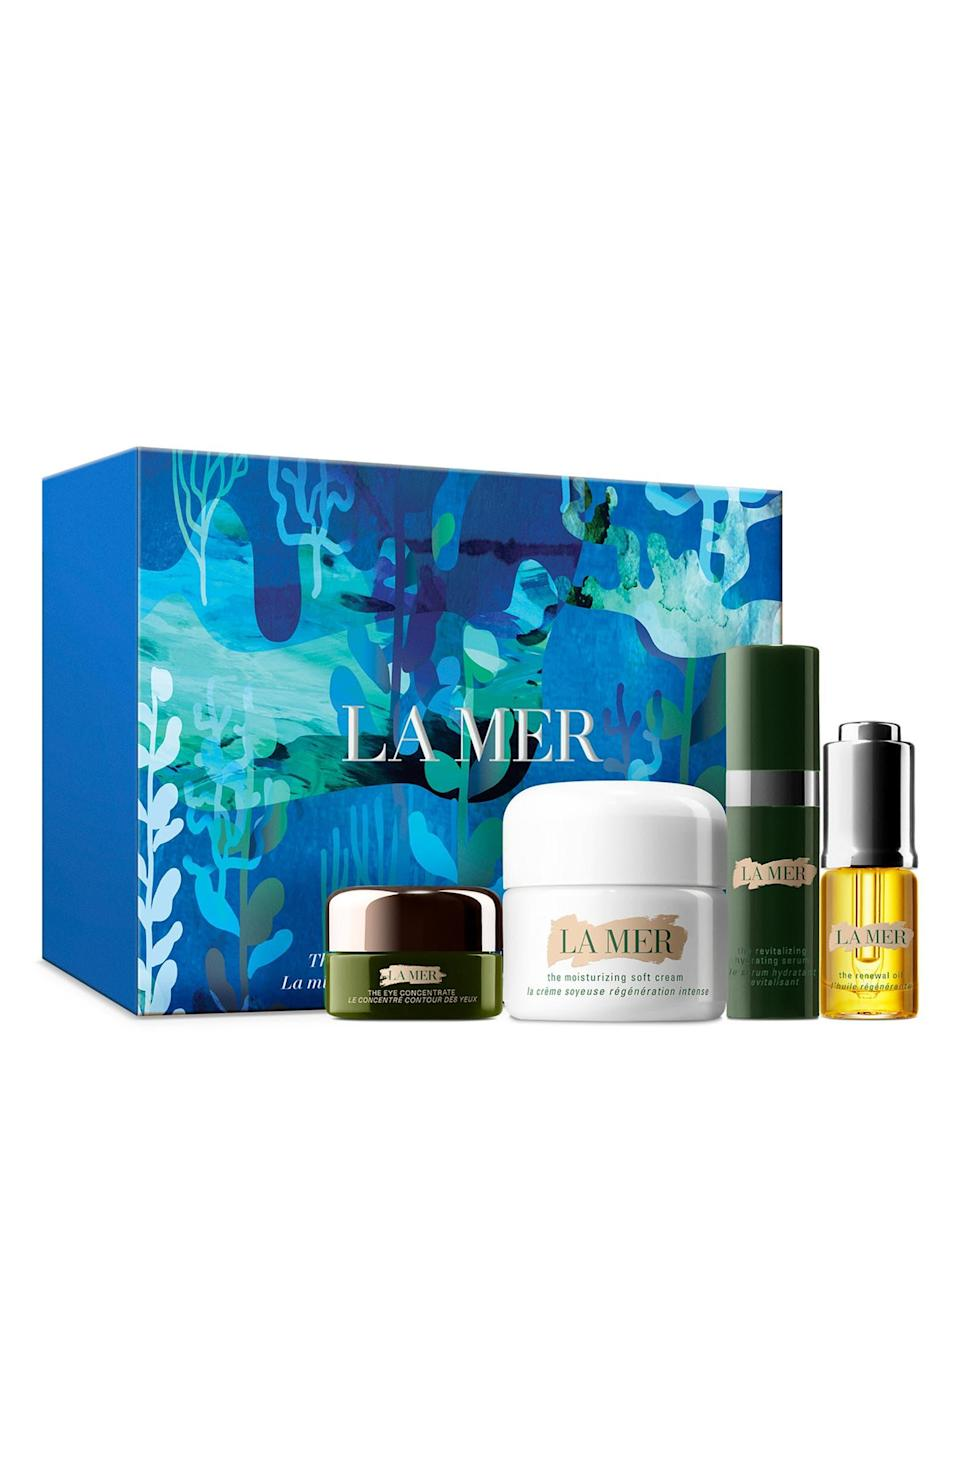 """<strong><h2>La Mer The Mini Miracle Broth Introductory Glow Set</h2></strong><br><strong>NEXT-BEST DEAL</strong><br>You may not get the cute green makeup bag, but this Nordstrom Anniversary Sale beauty exclusive still includes highly coveted La Mer goodies at a value-bundled price point.<br><br><em>Shop more <a href=""""https://go.skimresources.com/?id=30283X879131&xs=1&url=https%3A%2F%2Fwww.nordstrom.com%2Fbrowse%2Fanniversary-sale%2Fall%3Fcampaign%3D0728publicgnpt1%26jid%3Dj012165-15573%26cid%3D00000%26cm_sp%3Dmerch-_-anniversary_15573_j012165-_-catpromo_corp_persnav_shop%26%3D%26postalCodeAvailability%3D10543%26filterByProductType%3Dbeauty-grooming_beauty-supplements%26filterByProductType%3Dbeauty-grooming_eye-makeup%26filterByProductType%3Dbeauty-grooming_face-makeup%26filterByProductType%3Dbeauty-grooming_fragrance%26filterByProductType%3Dbeauty-grooming_hair-styling-products%26filterByProductType%3Dbeauty-grooming_hair-tools%26filterByProductType%3Dbeauty-grooming_hair-treatments%26filterByProductType%3Dbeauty-grooming_hygiene-products%26filterByProductType%3Dbeauty-grooming_lip-makeup%26filterByProductType%3Dbeauty-grooming_makeup-tools%26filterByProductType%3Dbeauty-grooming_moisturizers%26filterByProductType%3Dbeauty-grooming_nail-polish%26filterByProductType%3Dbeauty-grooming_shampoo%26filterByProductType%3Dbeauty-grooming_skin-care-tools%26filterByProductType%3Dbeauty-grooming_skin-care-treatments%26filterByProductType%3Dbeauty-grooming_skin-cleansers%26filterByProductType%3Dbeauty-grooming_sunscreen&sref=https%3A%2F%2Fwww.refinery29.com%2Fen-us%2Fnordstrom-anniversary-sale-best-sellers"""" rel=""""nofollow noopener"""" target=""""_blank"""" data-ylk=""""slk:Nordstrom Anniversary Sale beauty"""" class=""""link rapid-noclick-resp"""">Nordstrom Anniversary Sale beauty</a></em><br><br><strong>La Mer</strong> The Mini Miracle Broth™ Introductory Glow Set, $, available at <a href=""""https://go.skimresources.com/?id=30283X879131&url=https%3A%2F%2Fwww.nordstrom.com%2Fs%2Fla-mer-the-mini-miracl"""